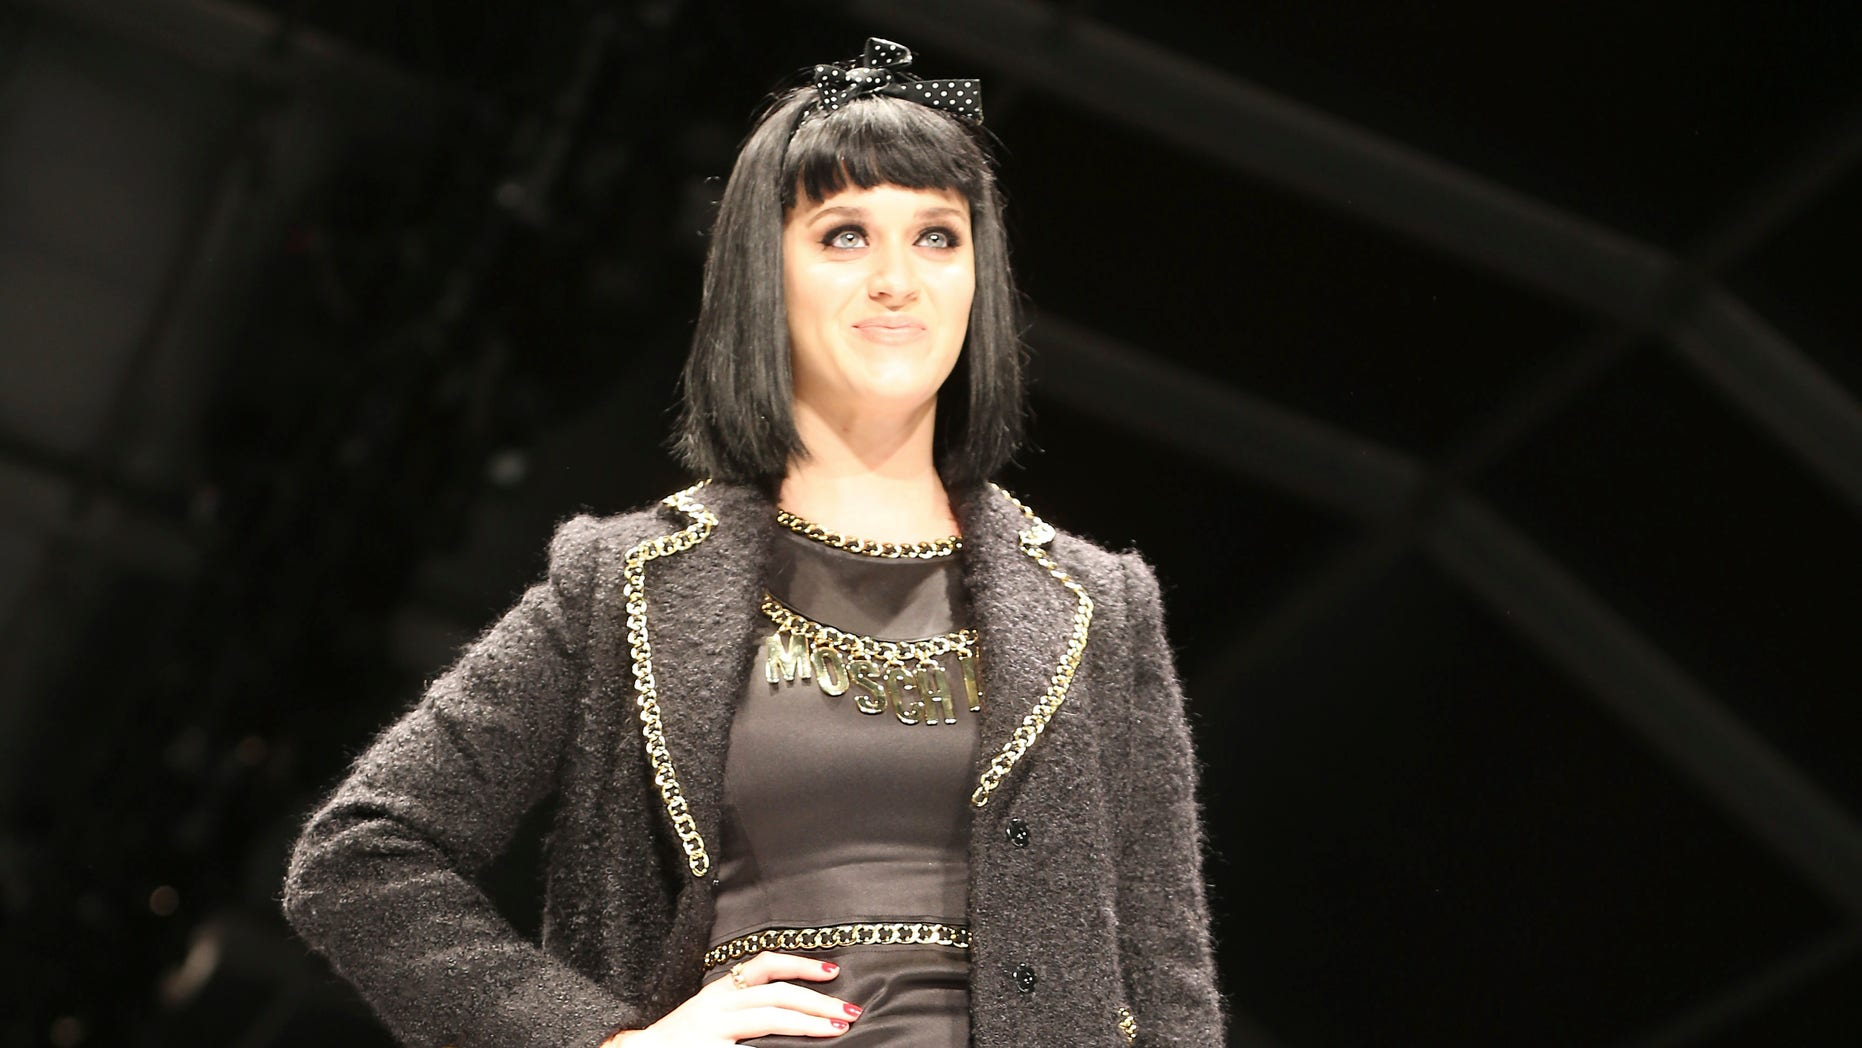 February 20, 2014. Katy Perry poses prior to the start of the Moschino women's Fall-Winter 2014-15 collection, part of the Milan Fashion Week, unveiled in Milan, Italy.